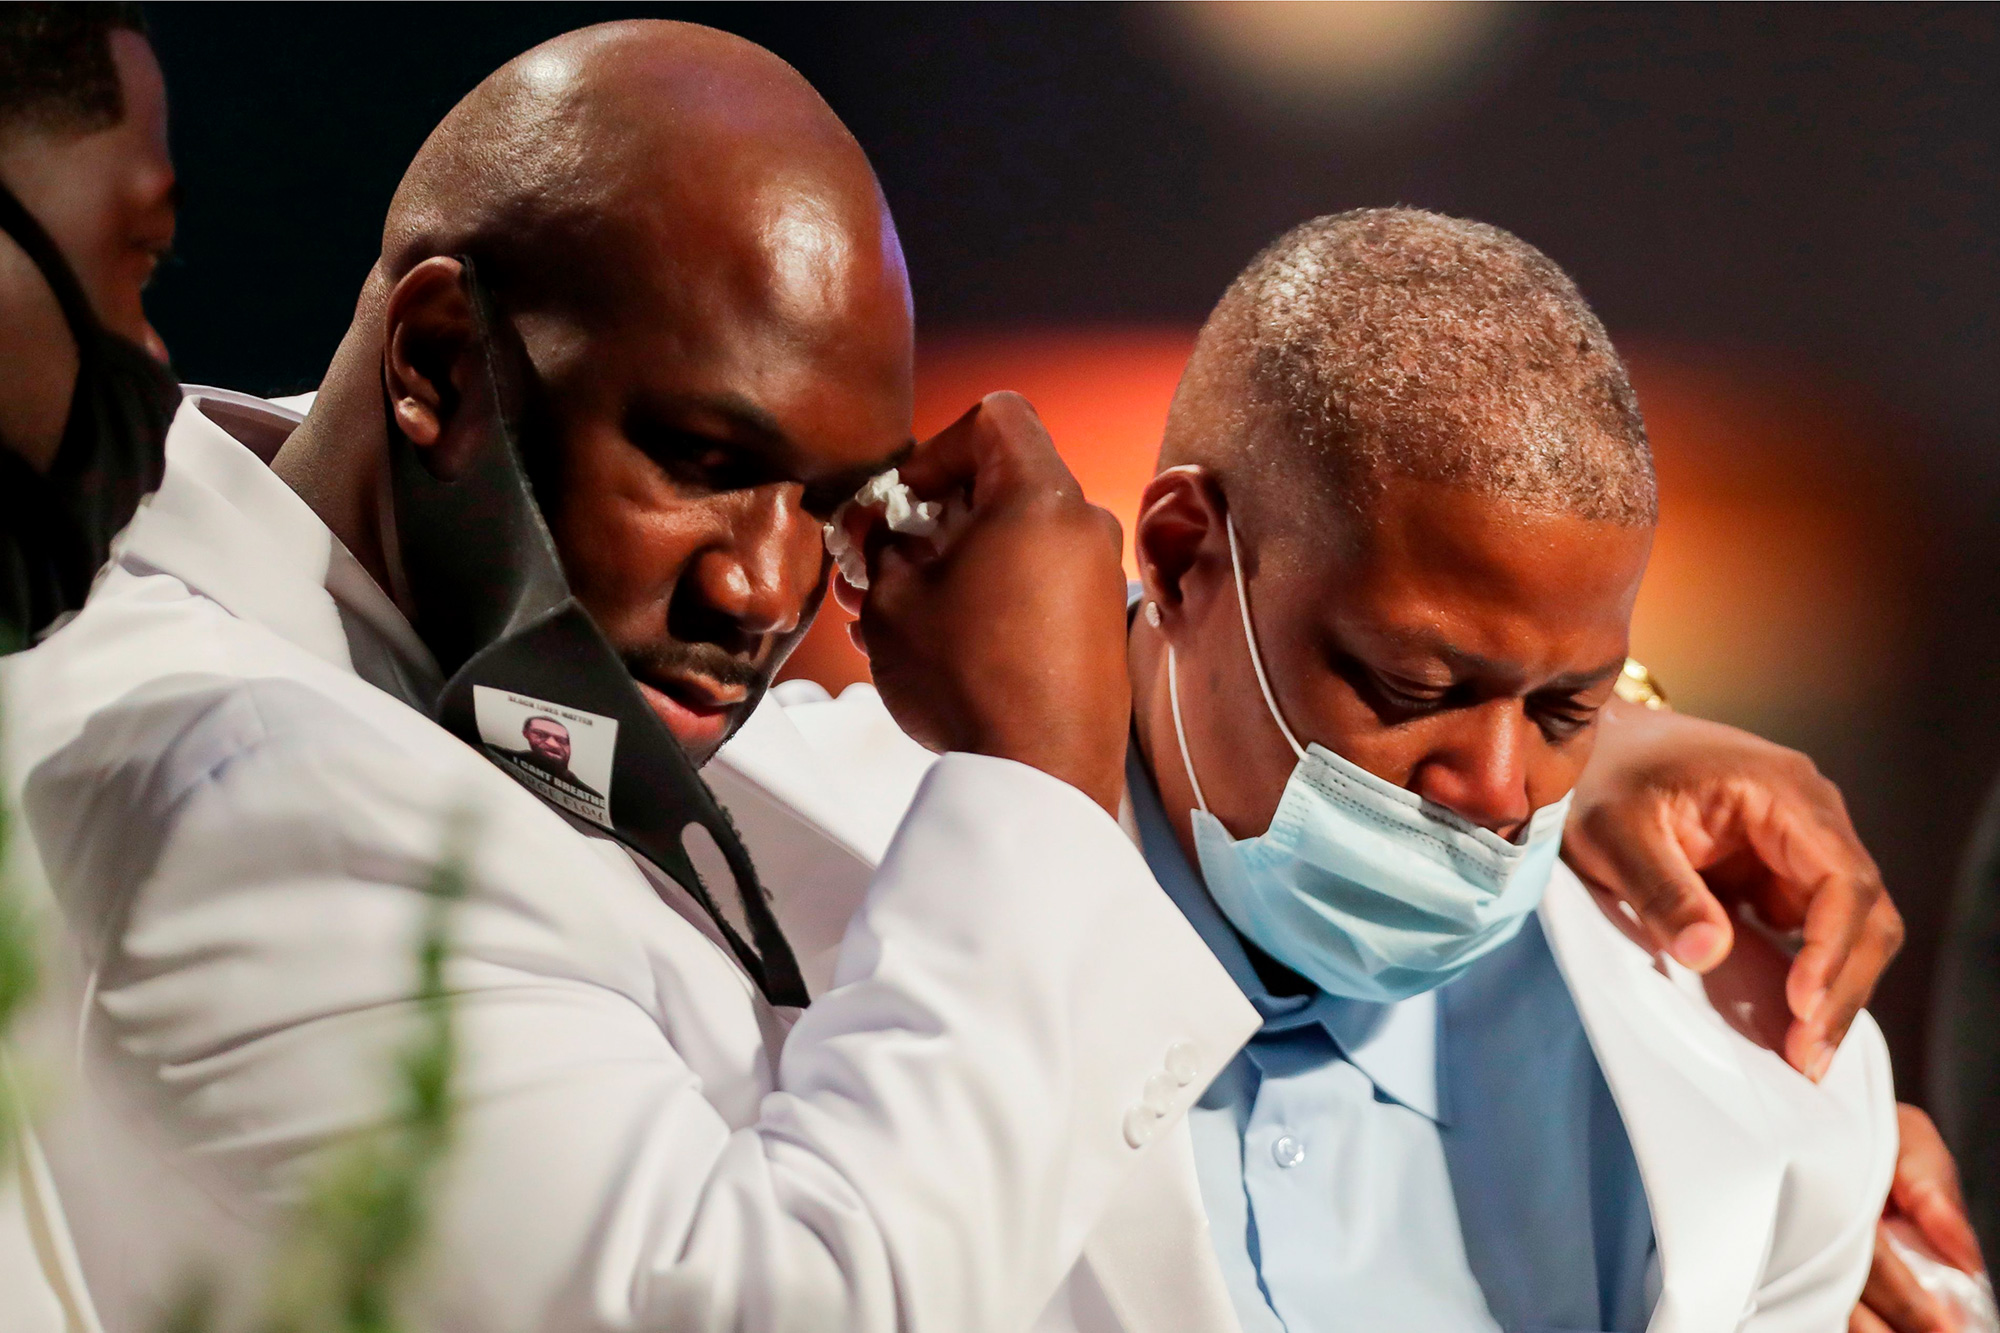 Family members grieve as they speak during the funeral for George Floyd on June 9, 2020, at The Fountain of Praise church in Houston